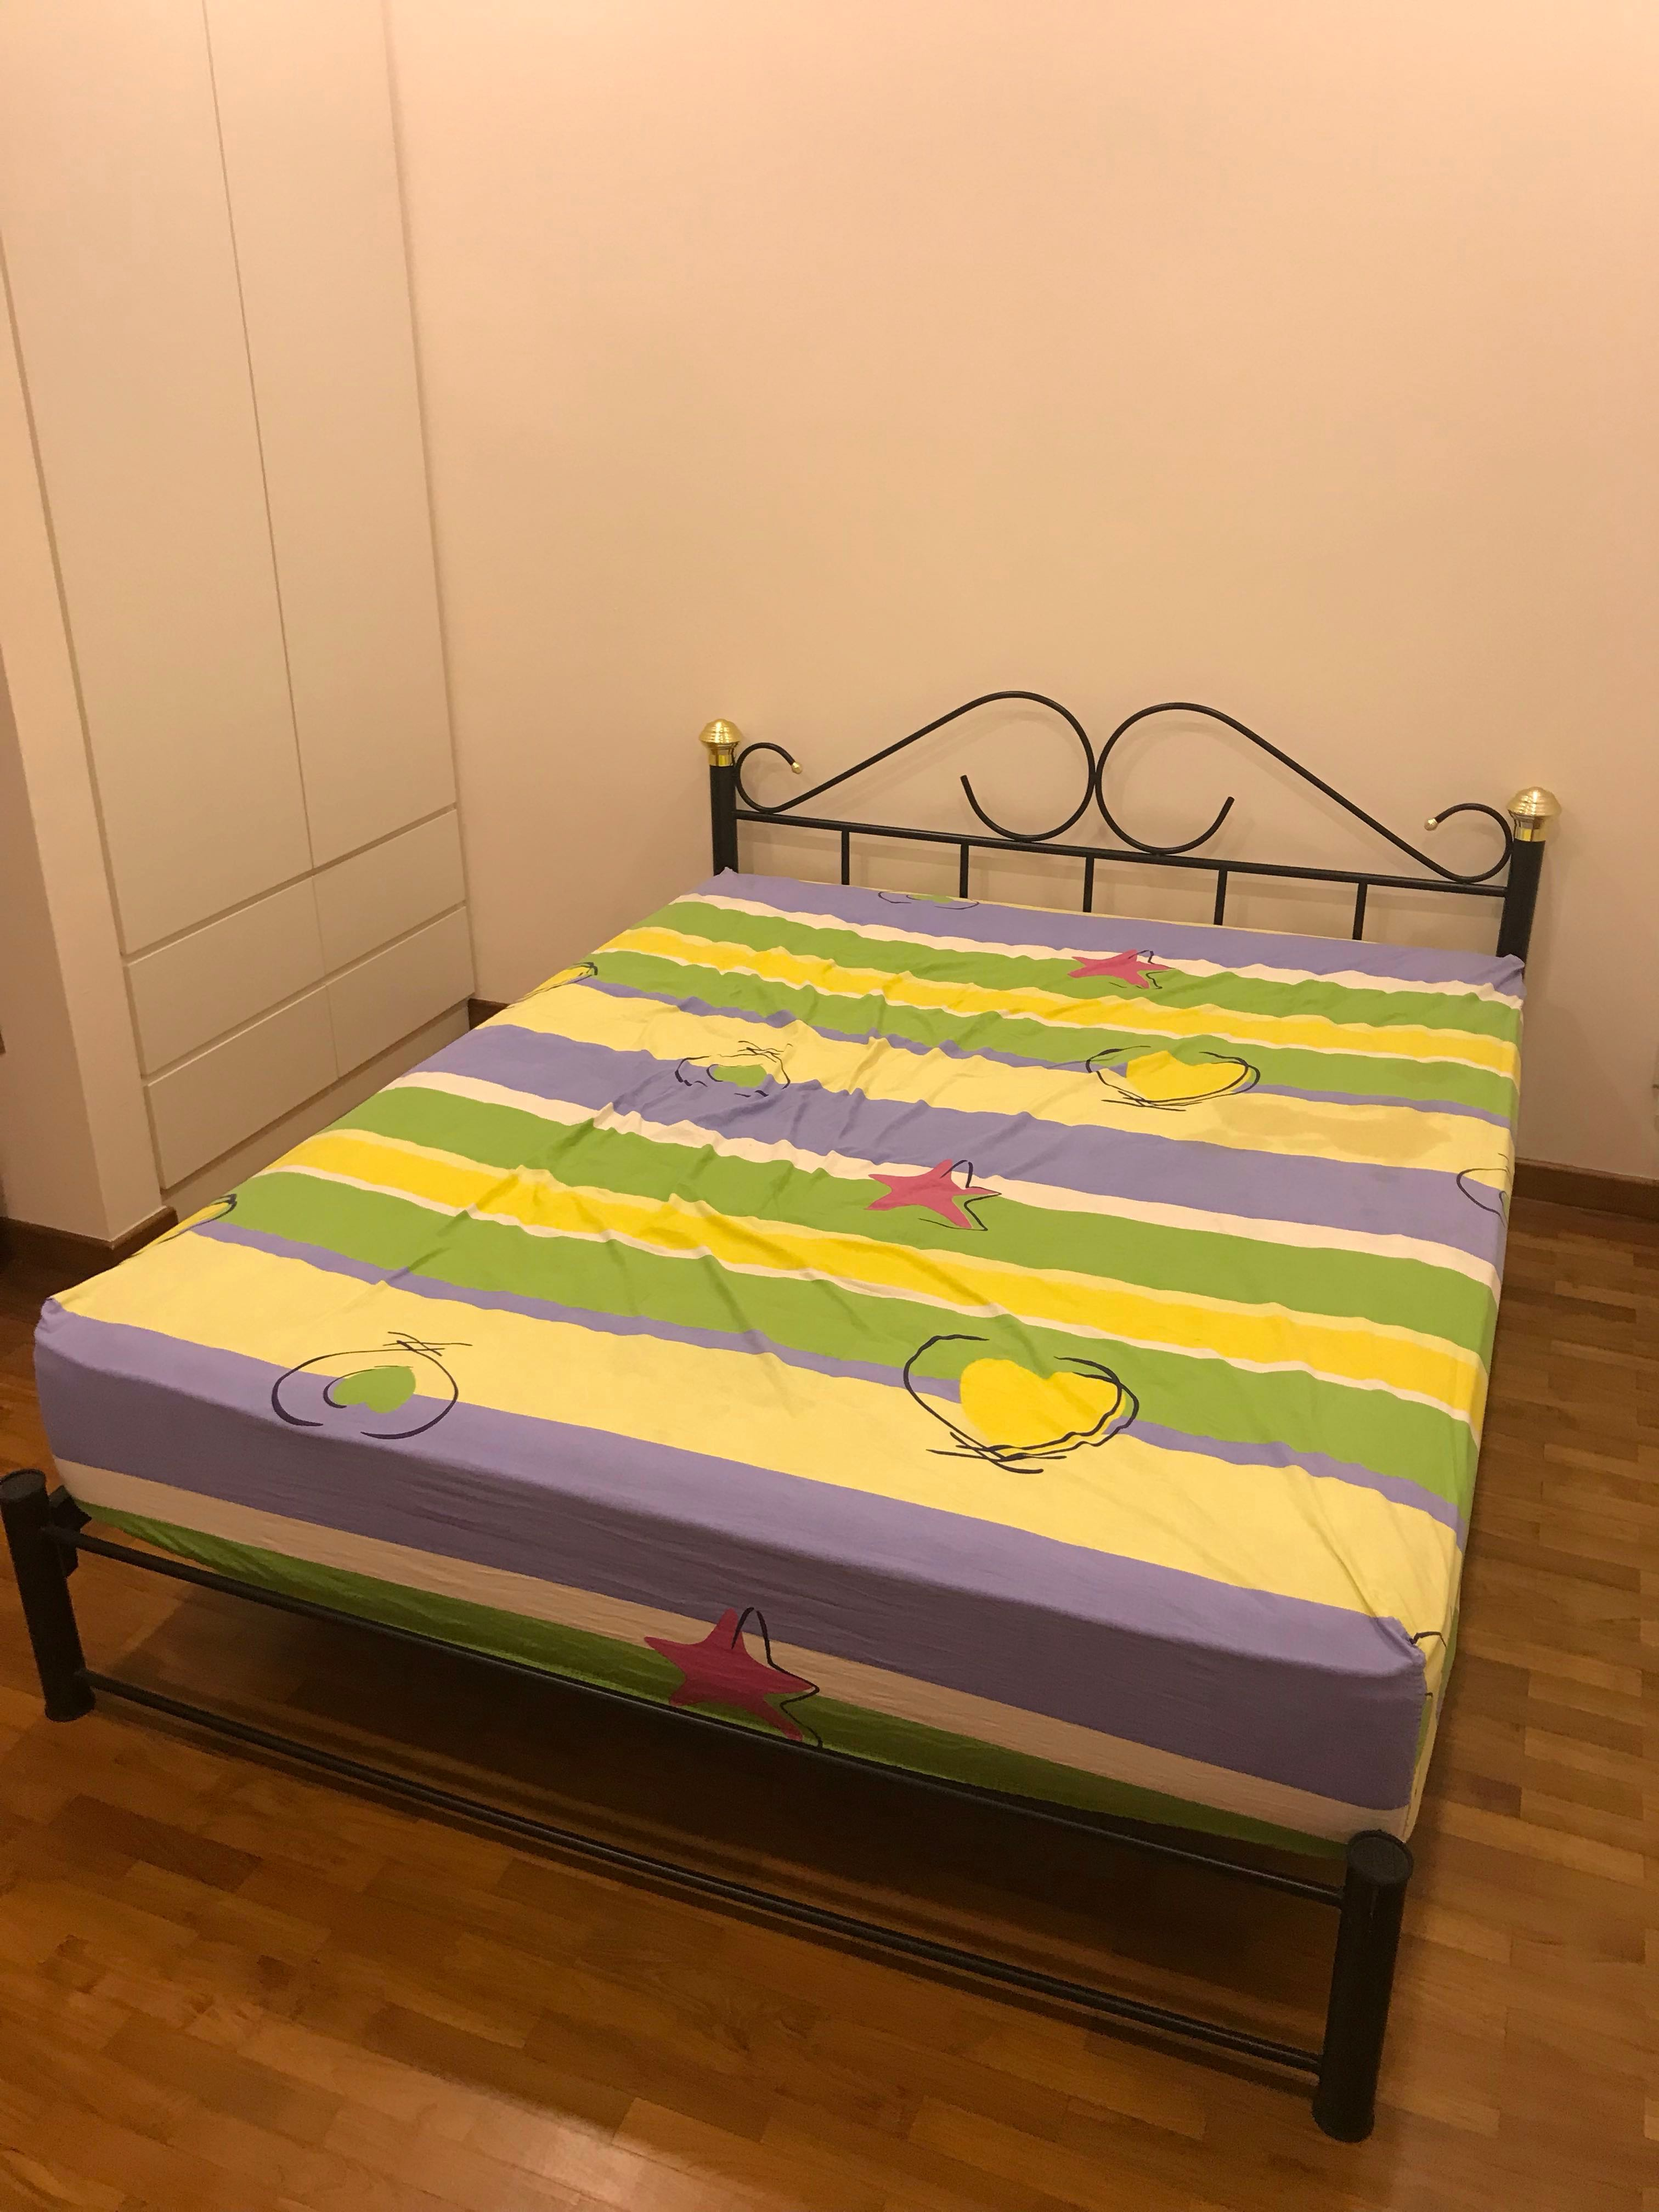 6a1f45d4ef6 Special Offer  Queen Size Bed with Metal Bed Frame